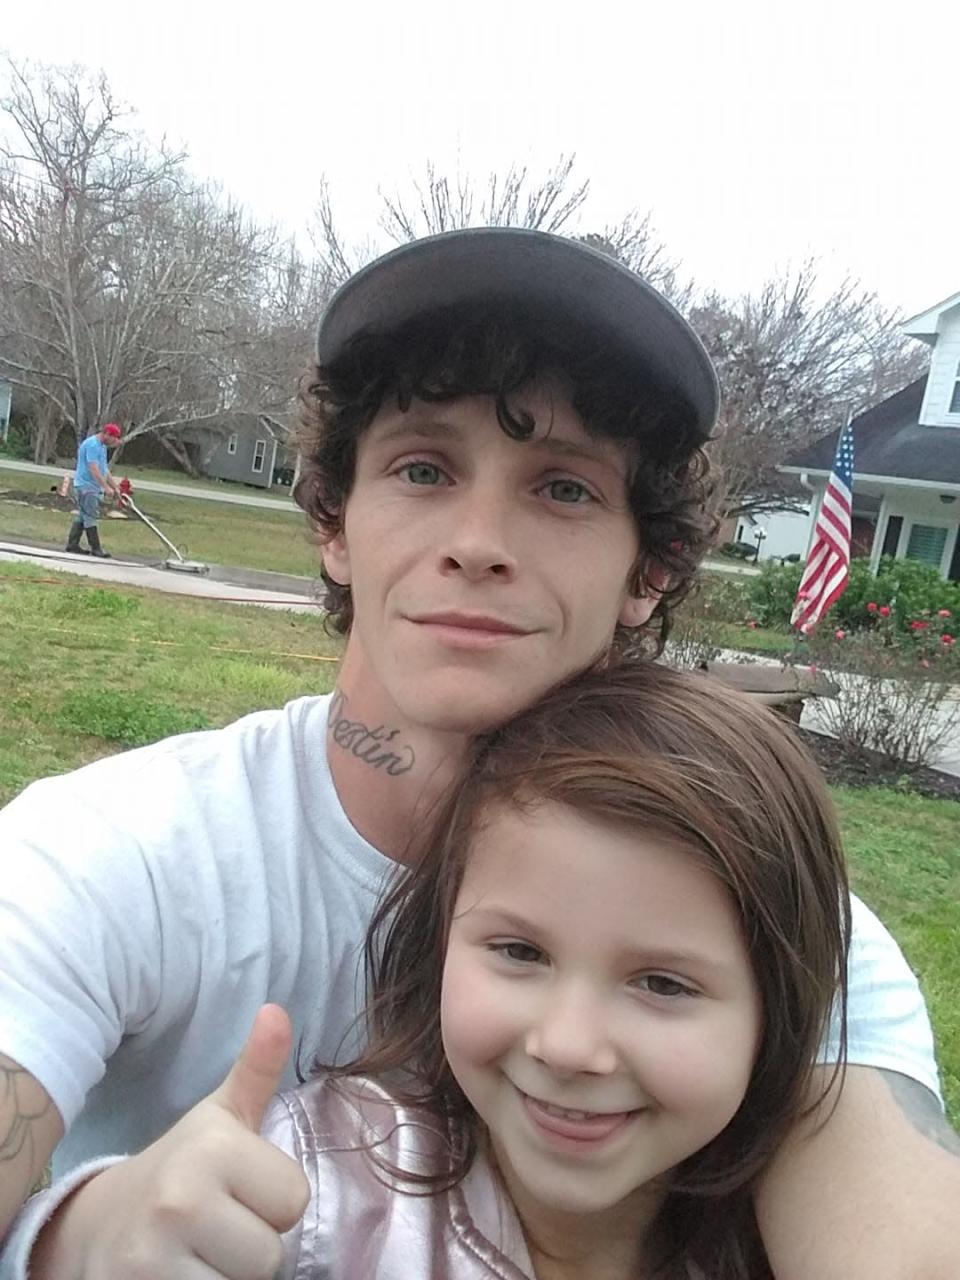 Texas single father Richard Miley was lectured for bringing his 5-year-old daughter to work. He says dads have it tough, too. (Photo: Courtesy of Richard Miley)